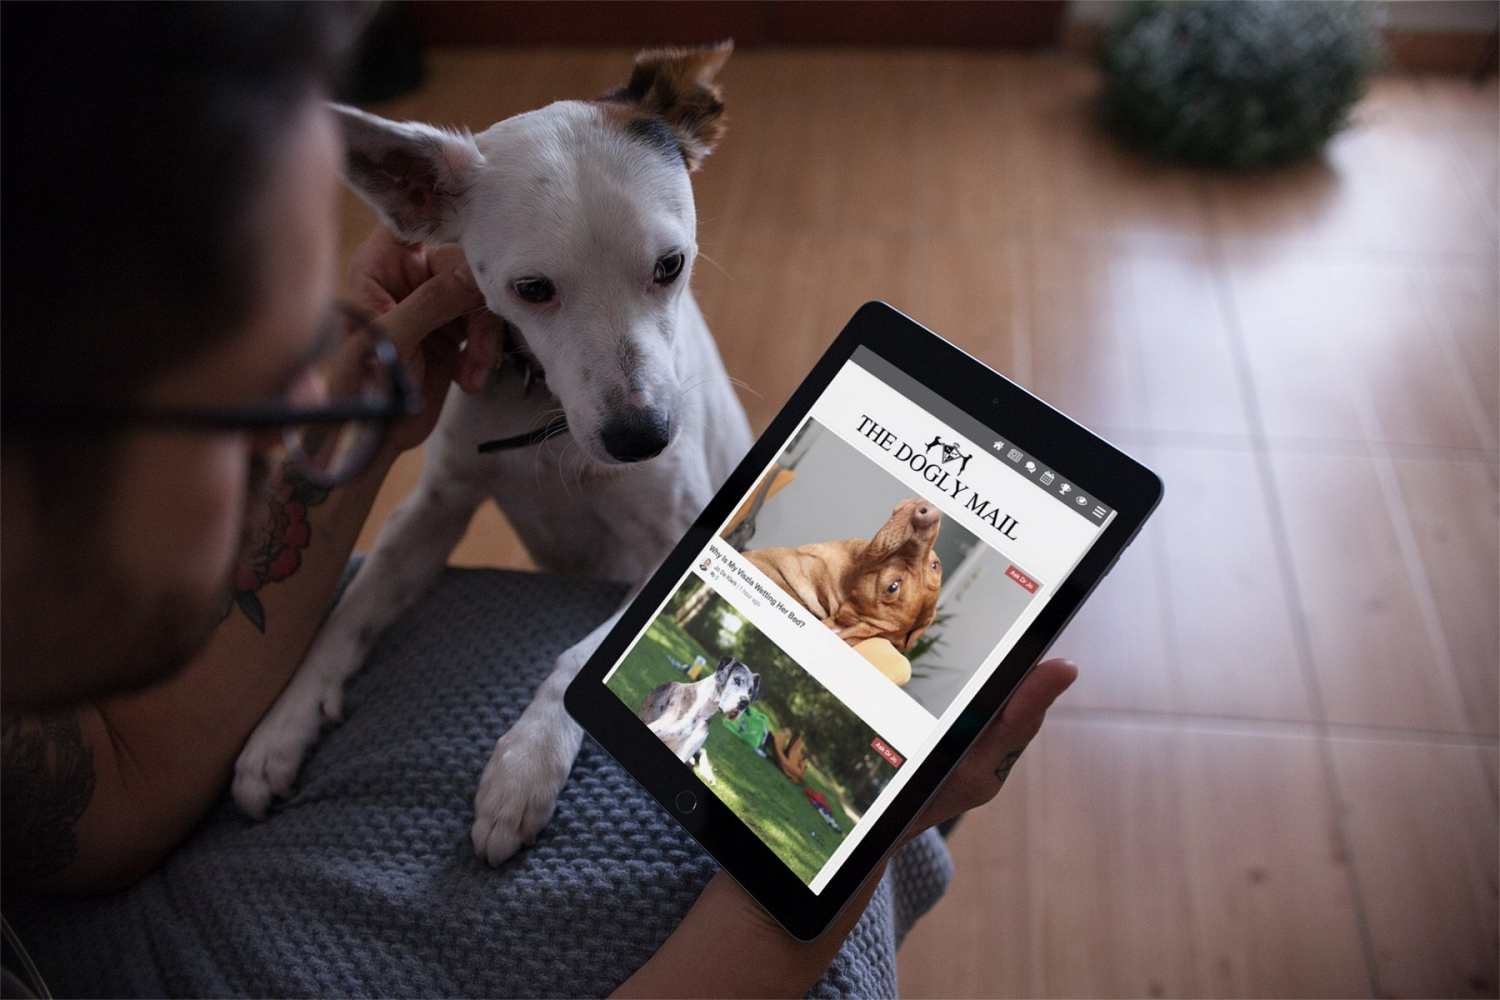 ipad-mockup-featuring-a-man-petting-his-dog-at-home-22834.jpg.c52b6185166706425f04be3a79a31a7c.jpg